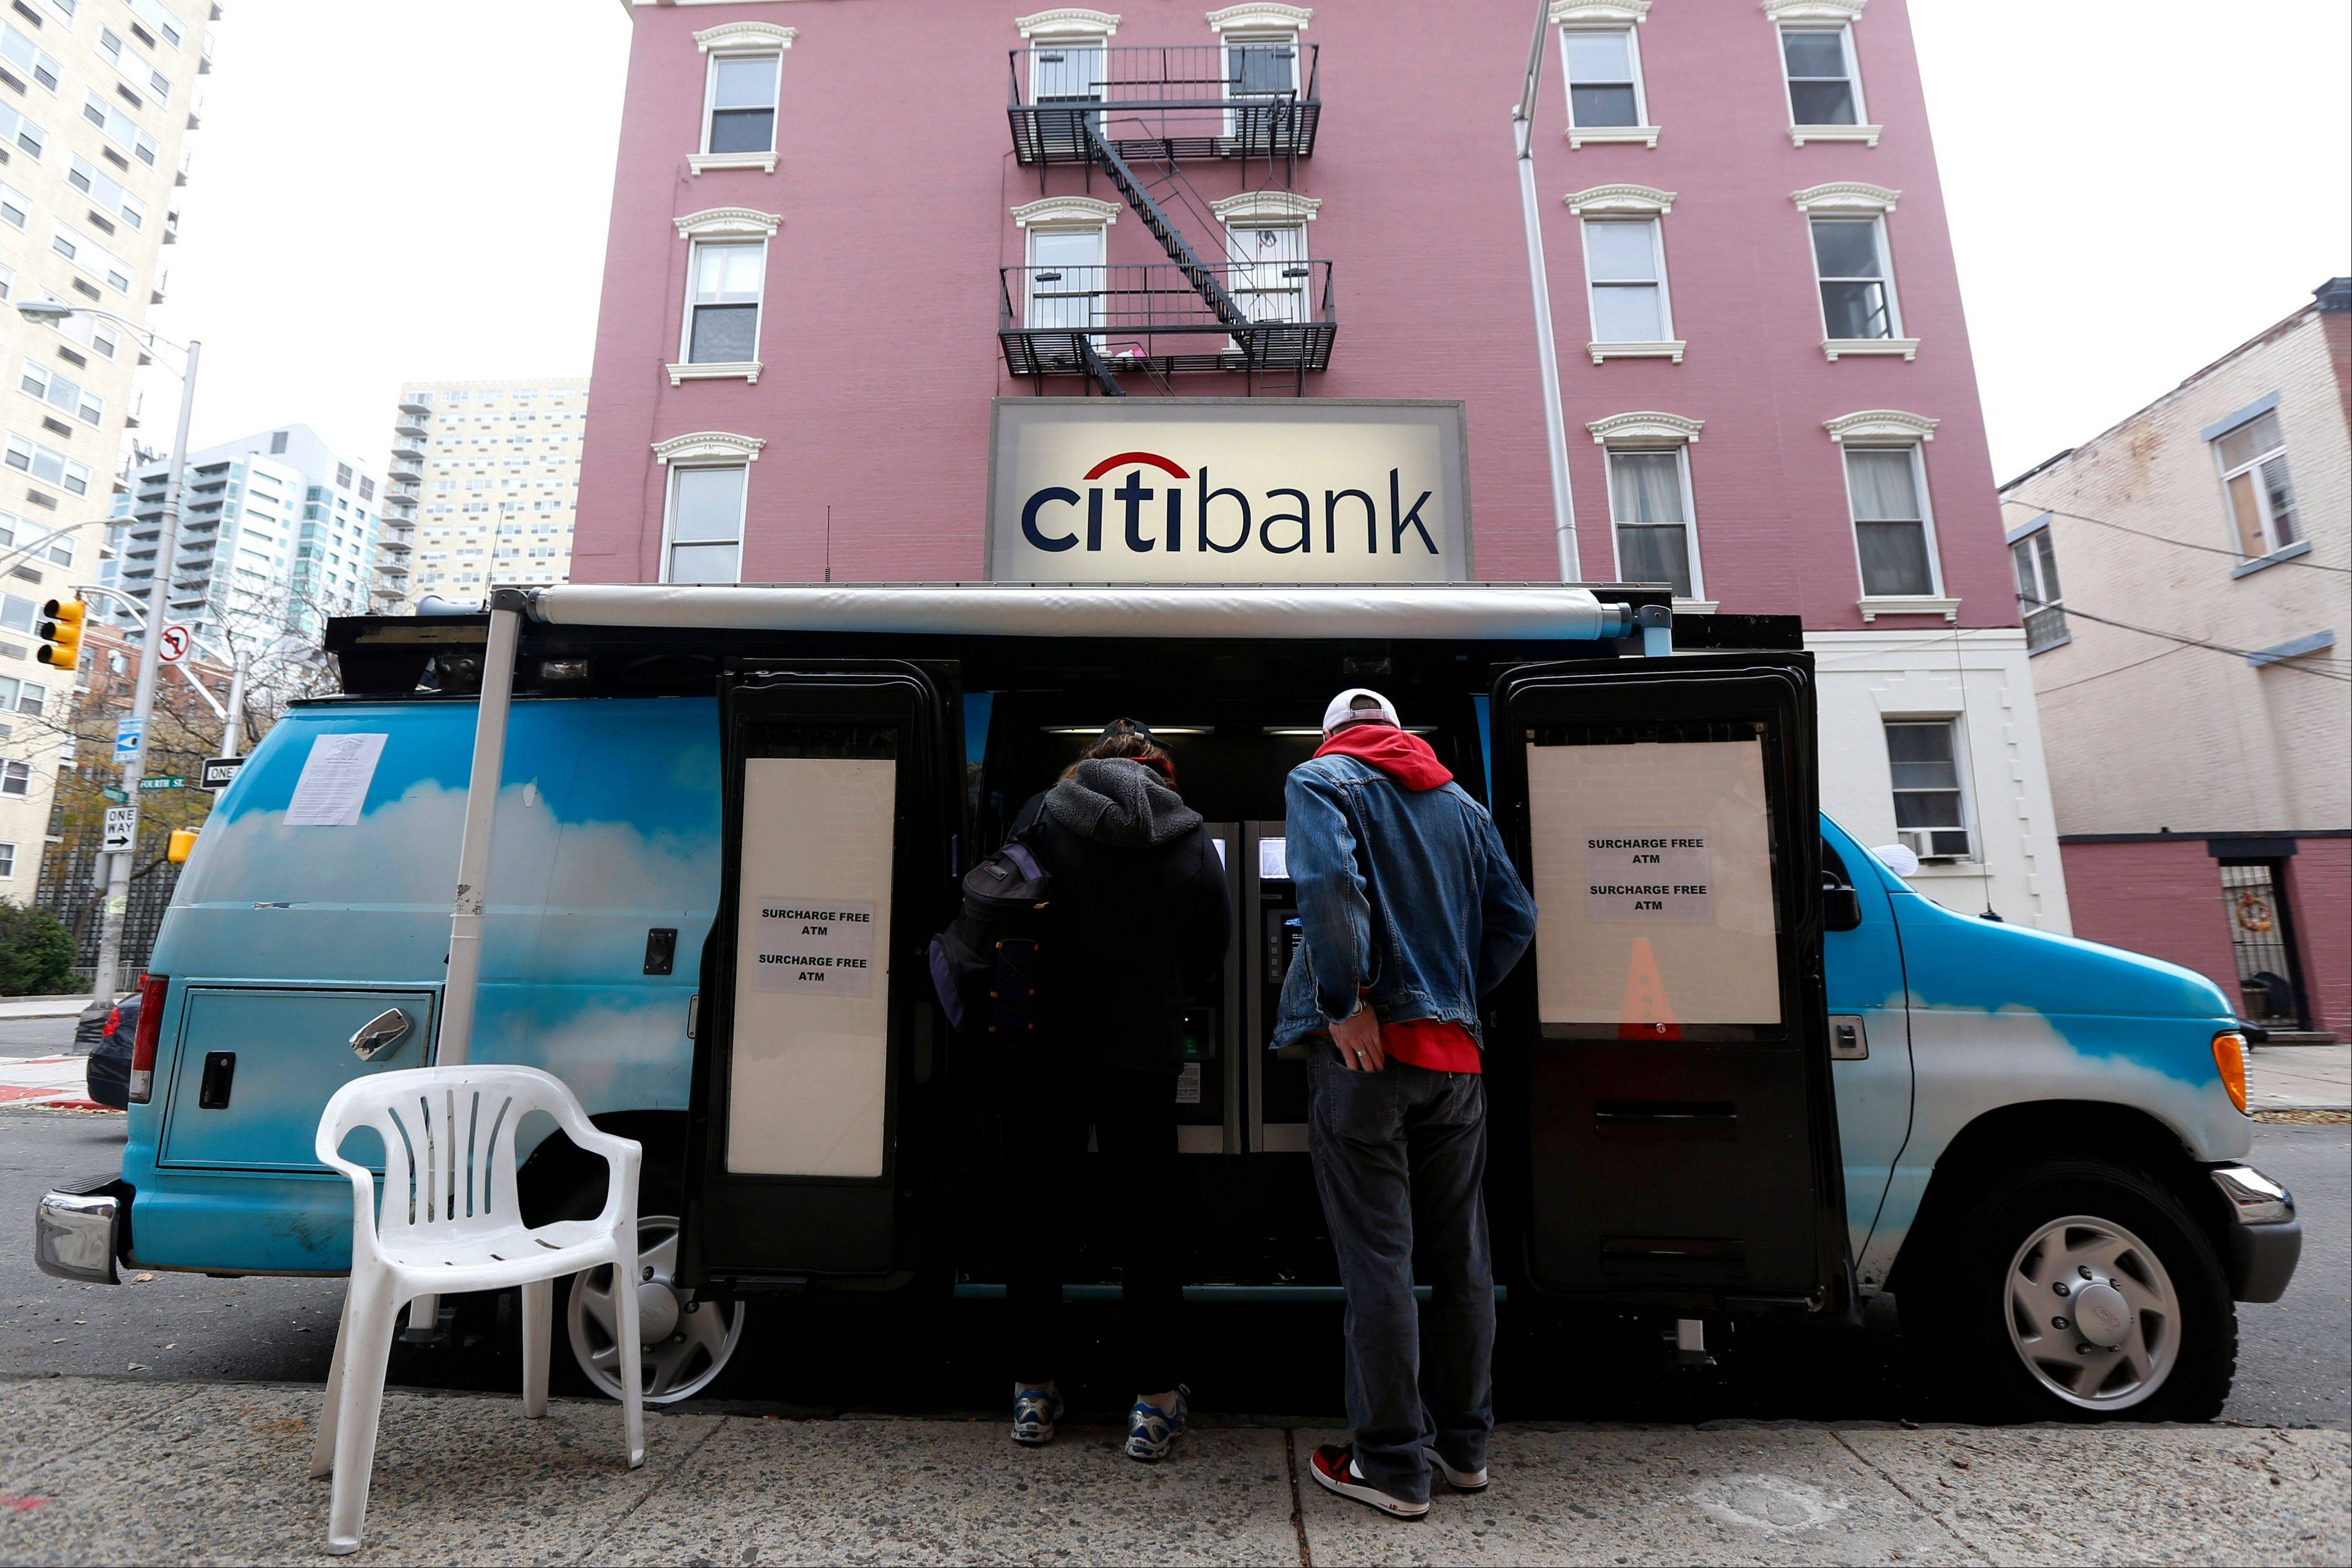 People withdraw money Friday from a mobile ATM machine set up in a van in Hoboken, N.J. The mobile ATM gives residents a chance to get cash in Hoboken, which is still blacked out following Superstorm Sandy.